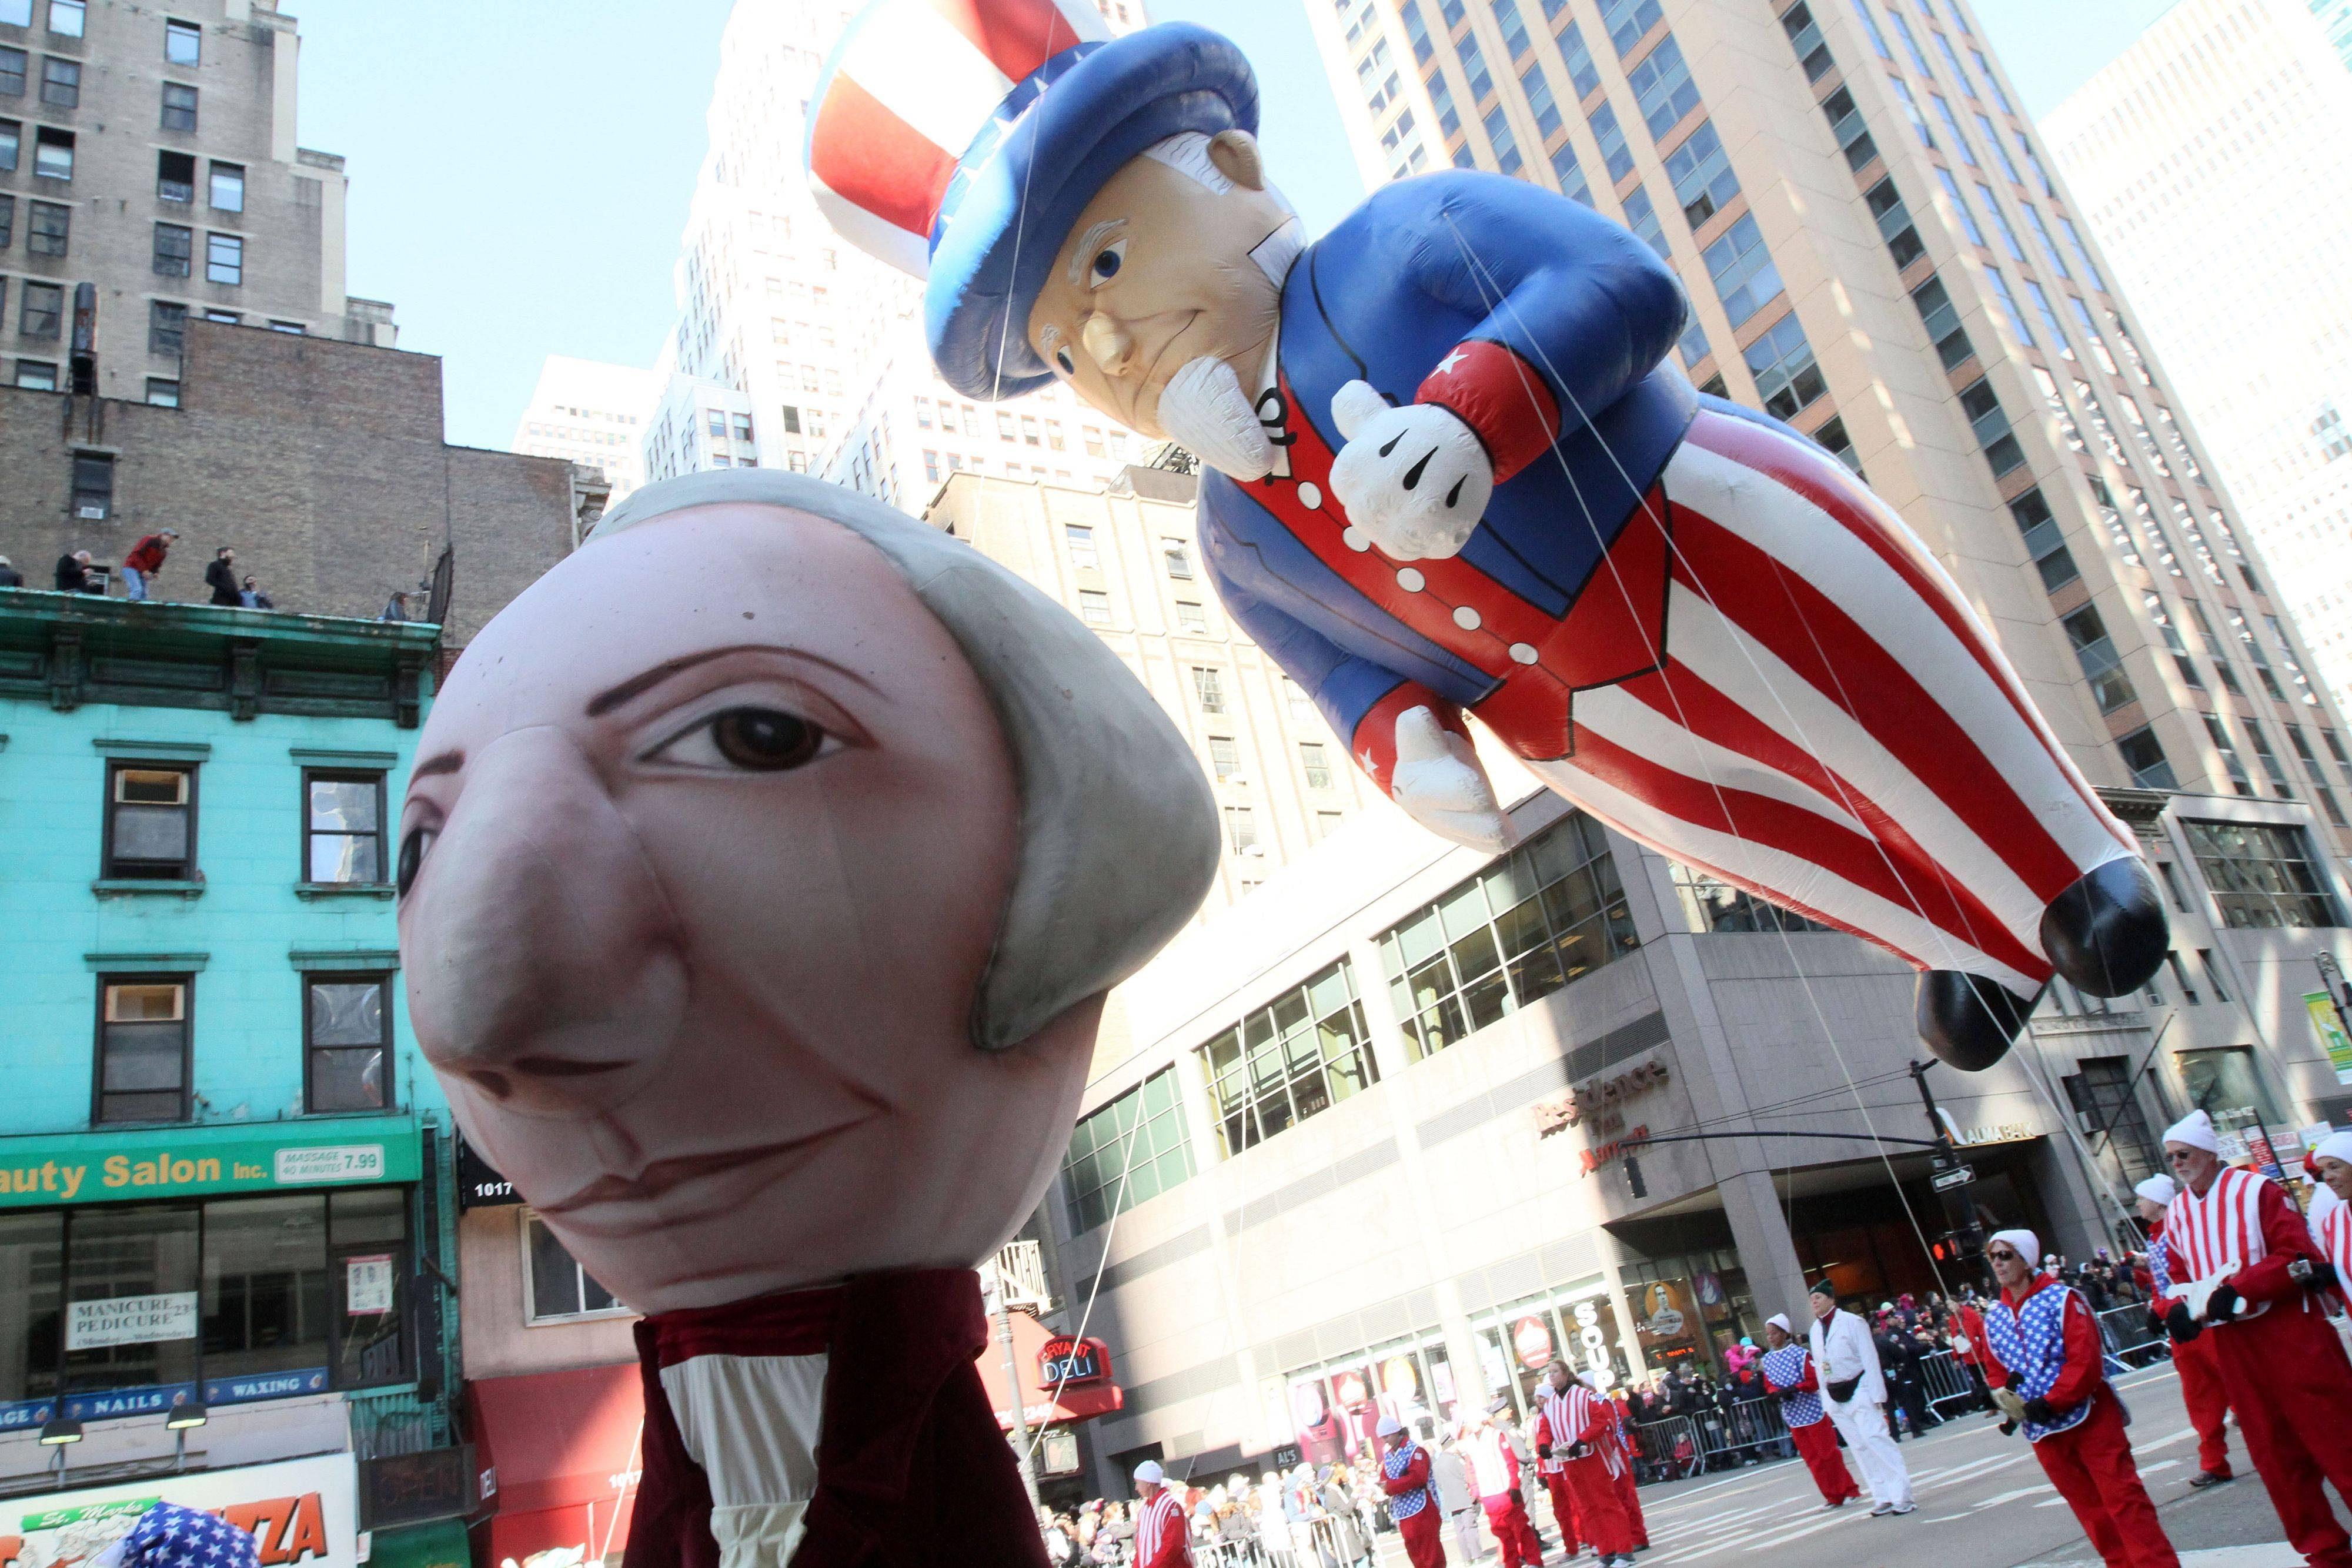 The Uncle Sam balloon, right, and other participants in the 85th Annual Macy's Thanksgiving Day Parade make their way down New York's Sixth Avenue Thursday, Nov. 24, 2011.A jetpack-wearing monkey and a freakish creation from filmmaker Tim Burton are two of the big new balloons that will make their inaugural appearances in front of millions of people at this year's parade.